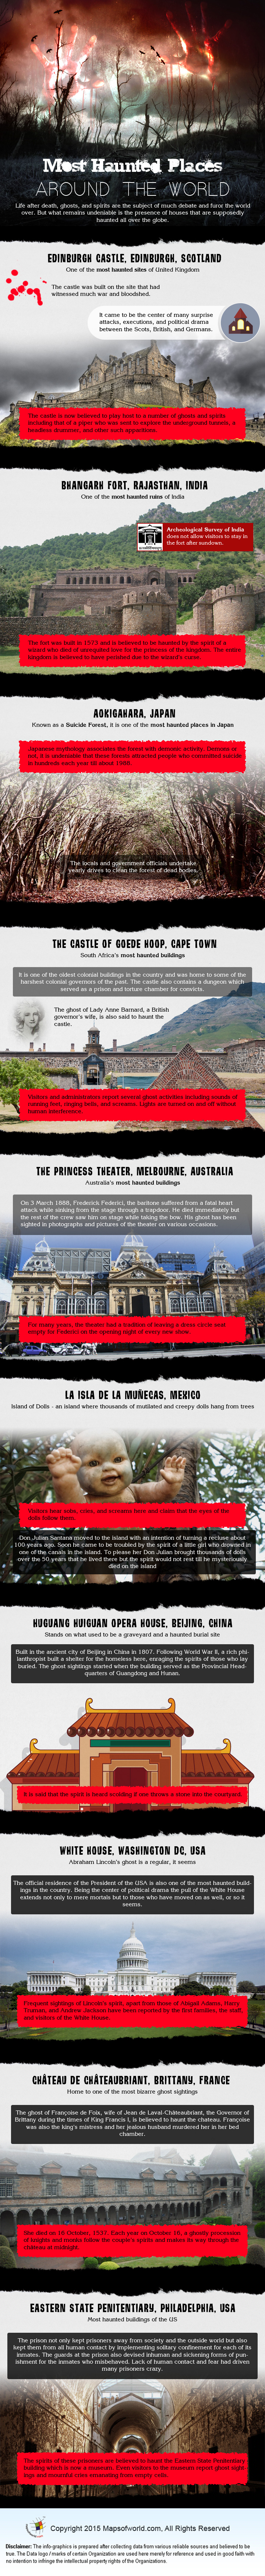 Infographics on Ten Most Haunted Places in the World